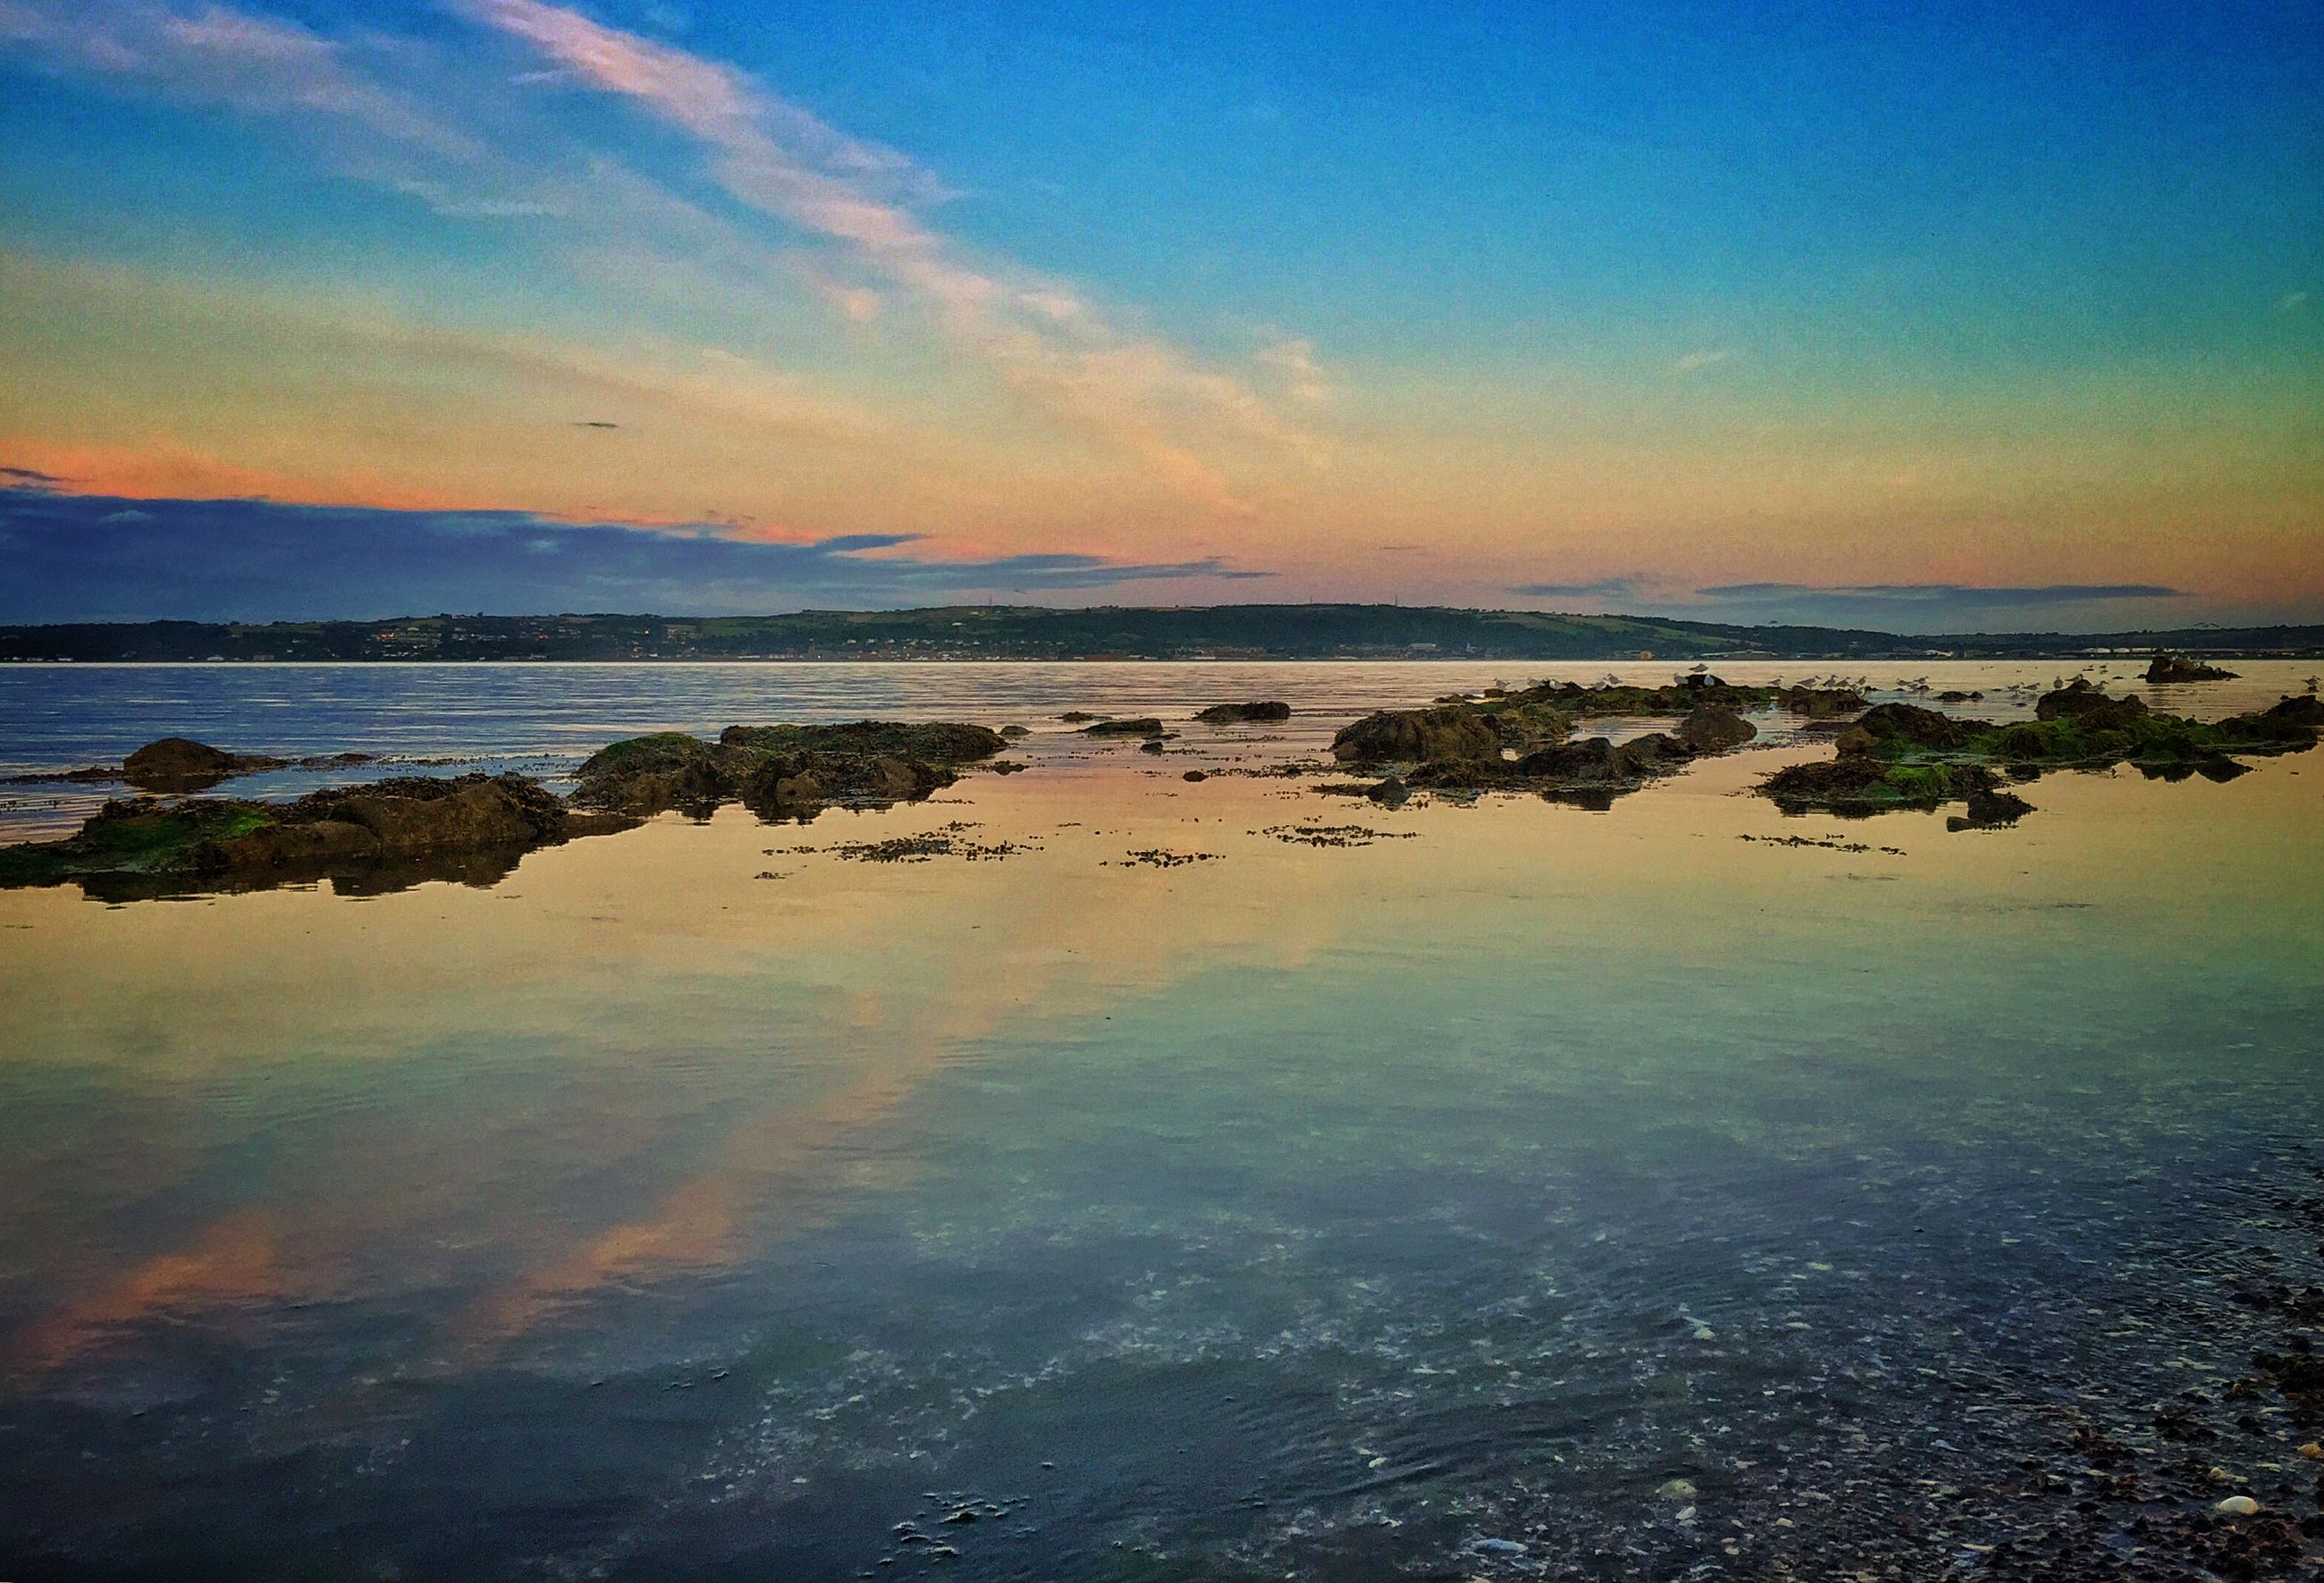 sea, water, sunset, scenics, horizon over water, tranquil scene, beauty in nature, tranquility, sky, beach, nature, idyllic, shore, orange color, waterfront, coastline, reflection, outdoors, high angle view, ocean